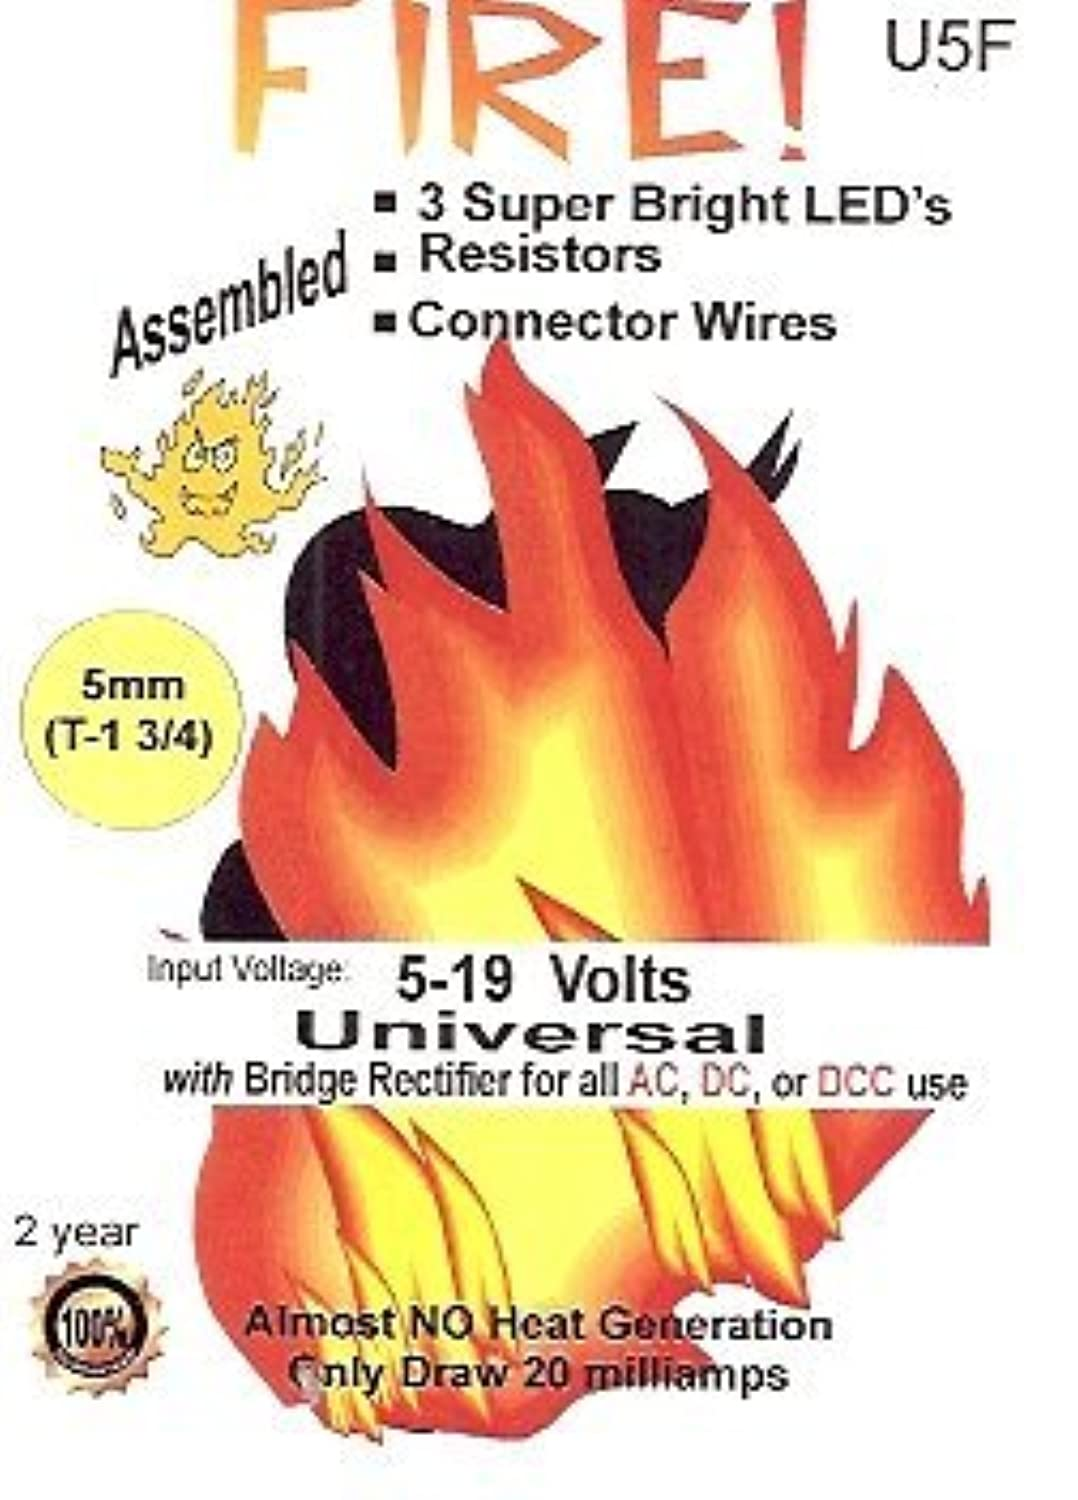 U5F Simulated model Fire 5mm LED Kit by Evan Designs